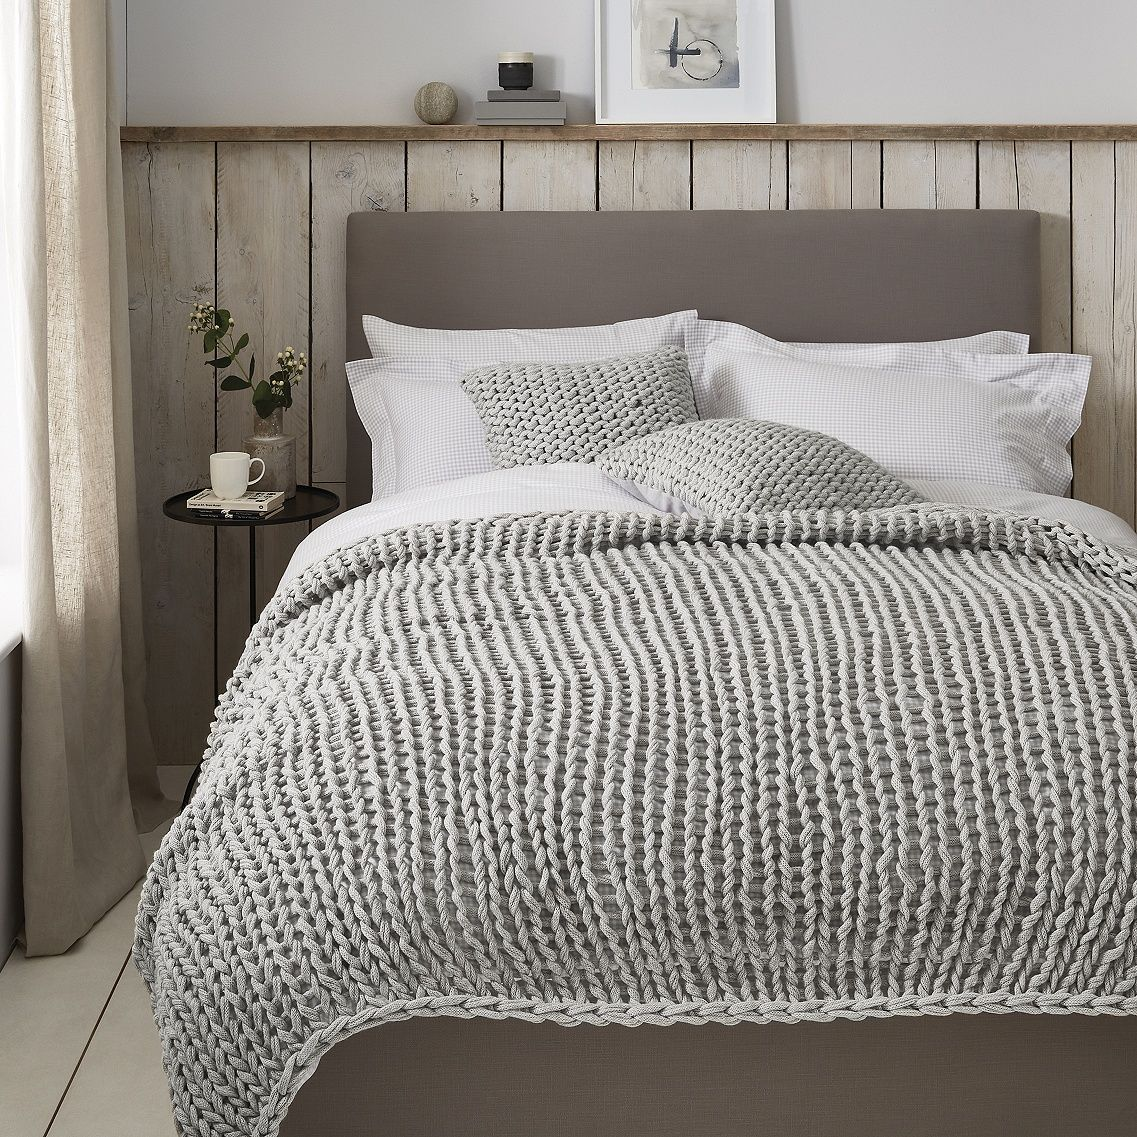 Wilby Throw & Cushion Cover Cushions, Bedspreads